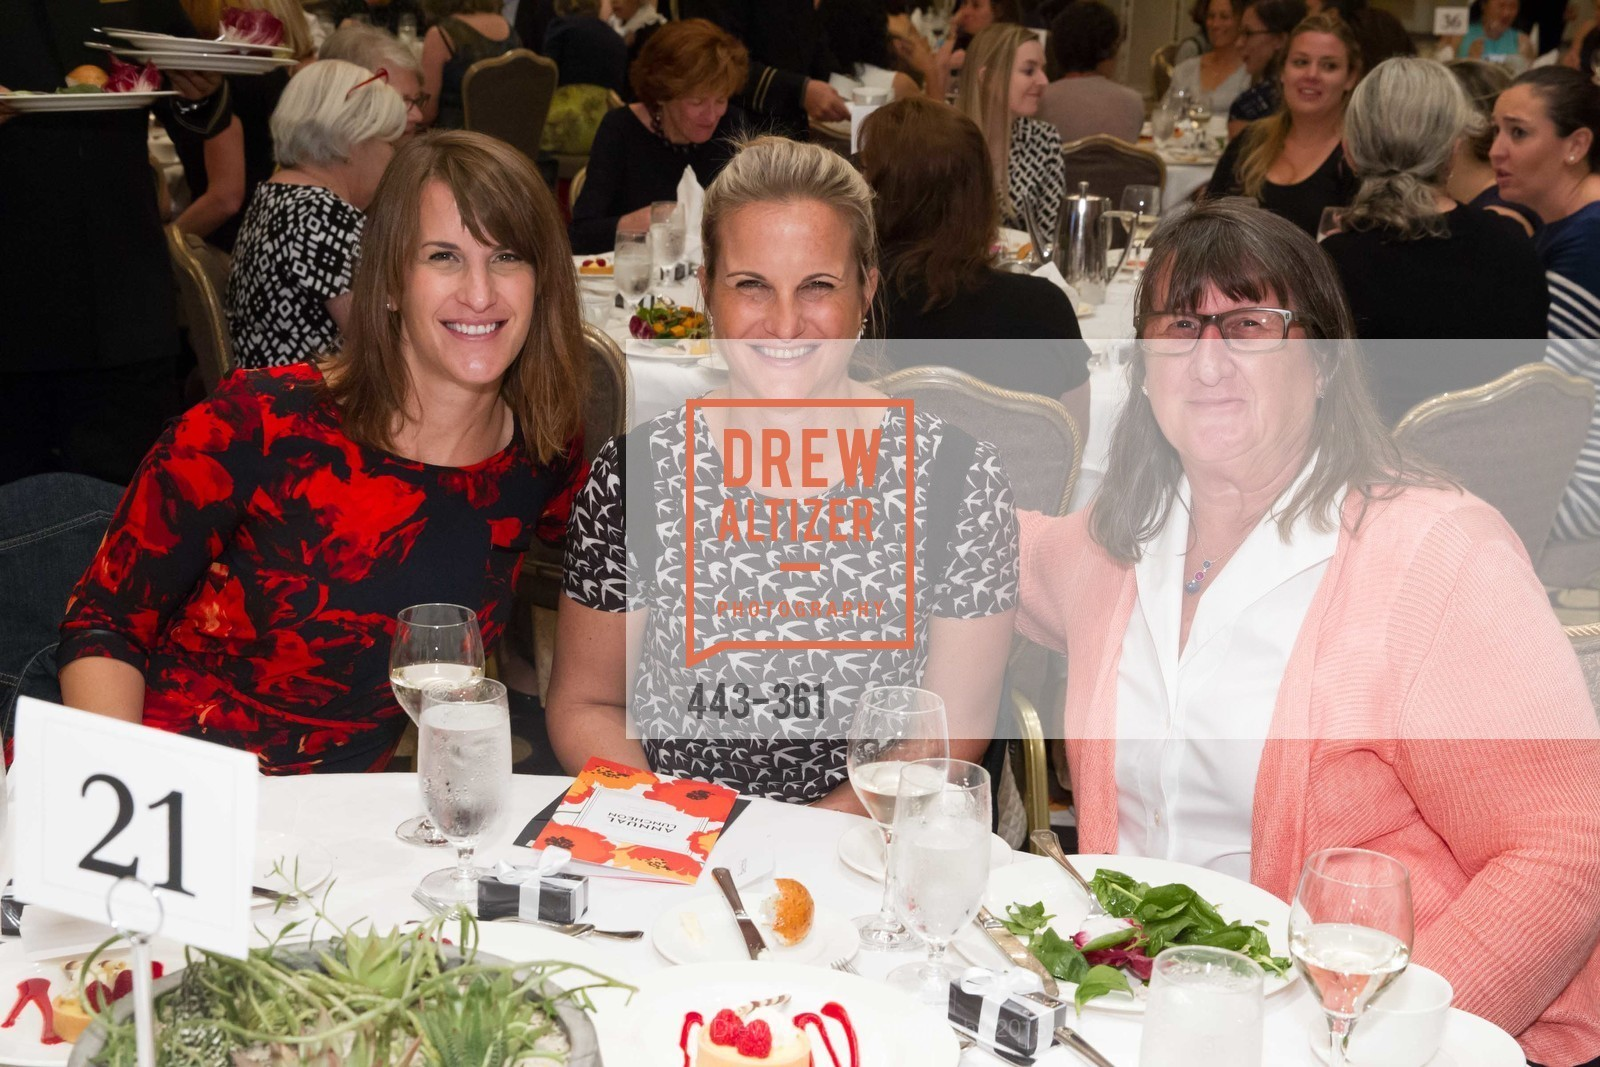 Megan Bechtol, Sharon Bechtol, Homeless Prenatal Programs Annual Luncheon, Fairmont Hotel, October 9th, 2015,Drew Altizer, Drew Altizer Photography, full-service event agency, private events, San Francisco photographer, photographer California